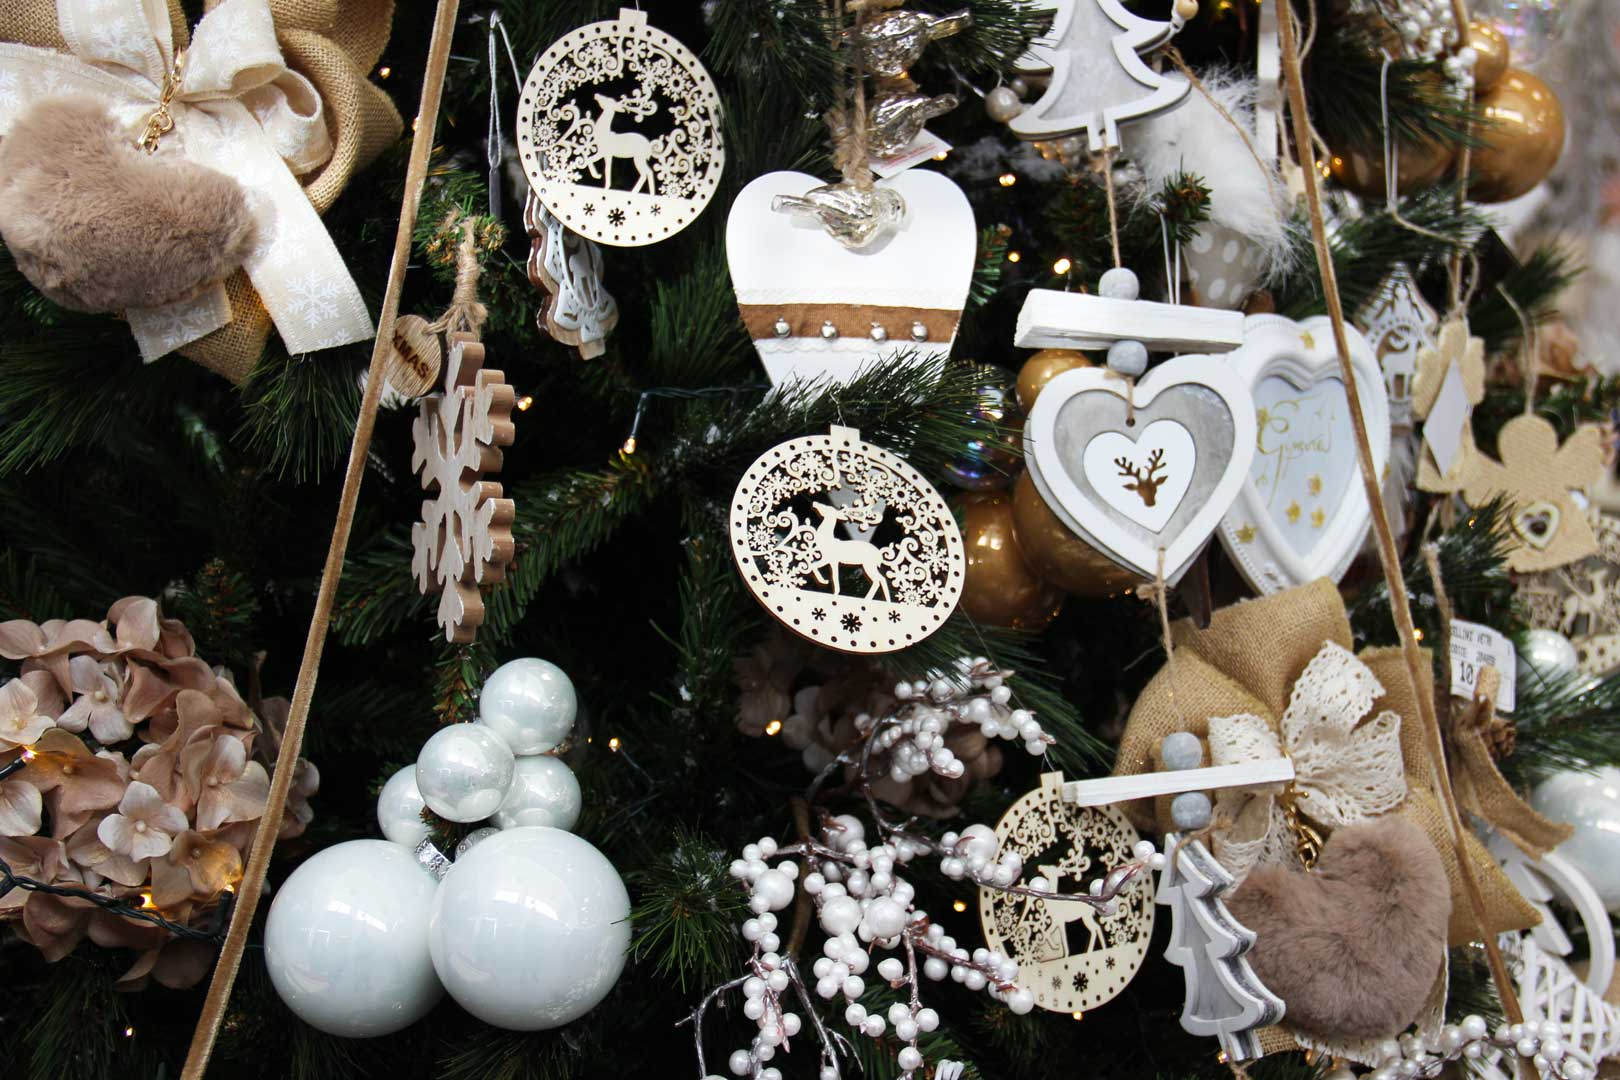 http://www.specialdays-eventi.it/wp-content/uploads/2017/11/albero-natale-special-days-2.jpg